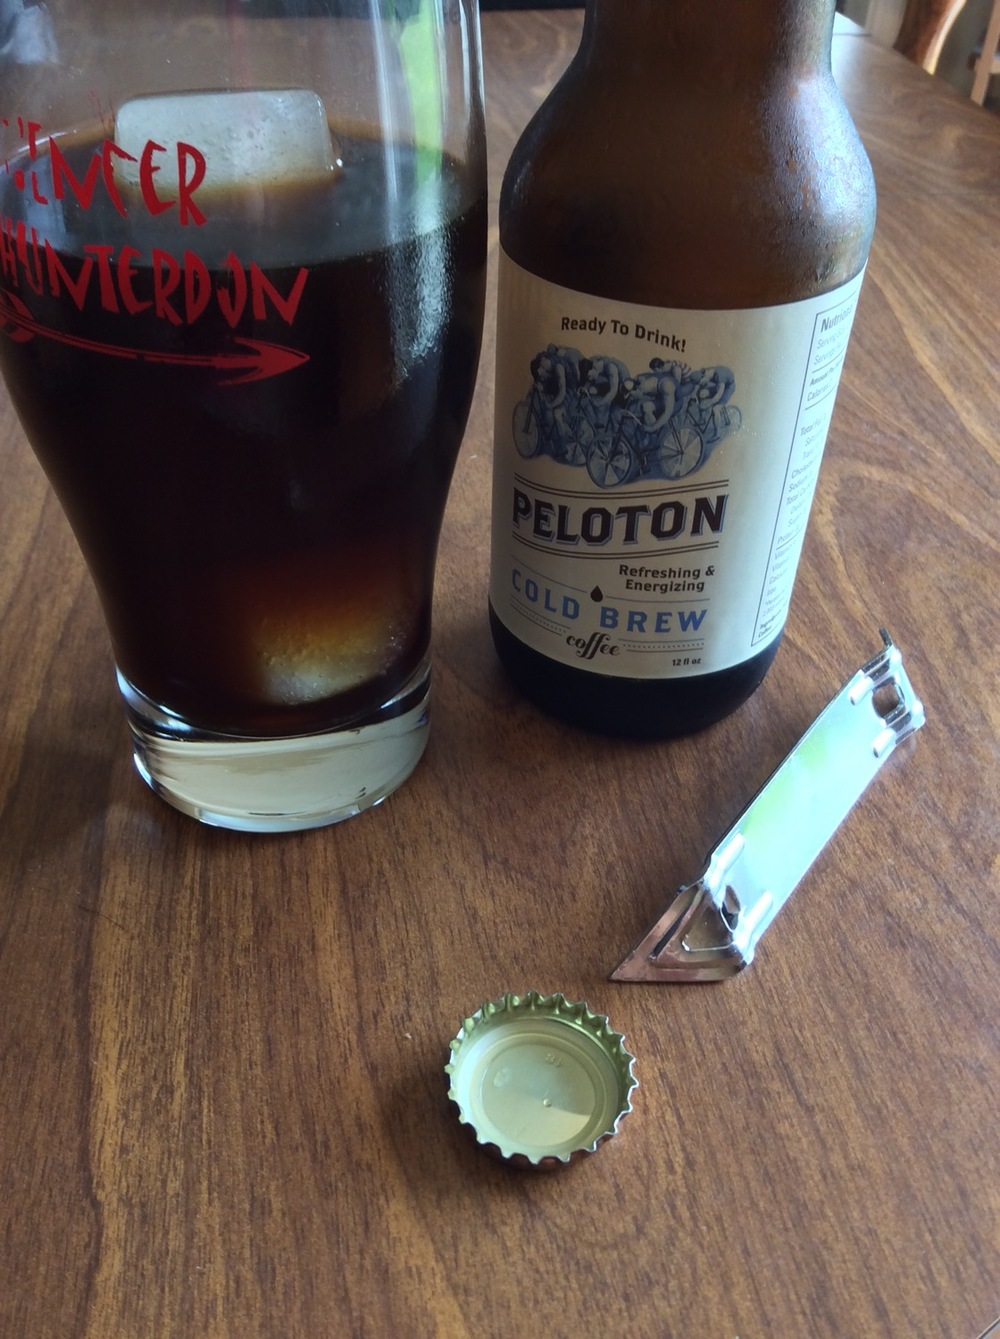 Peloton pours a nice dark color and looks good in the Hell of Hunterdon glass.